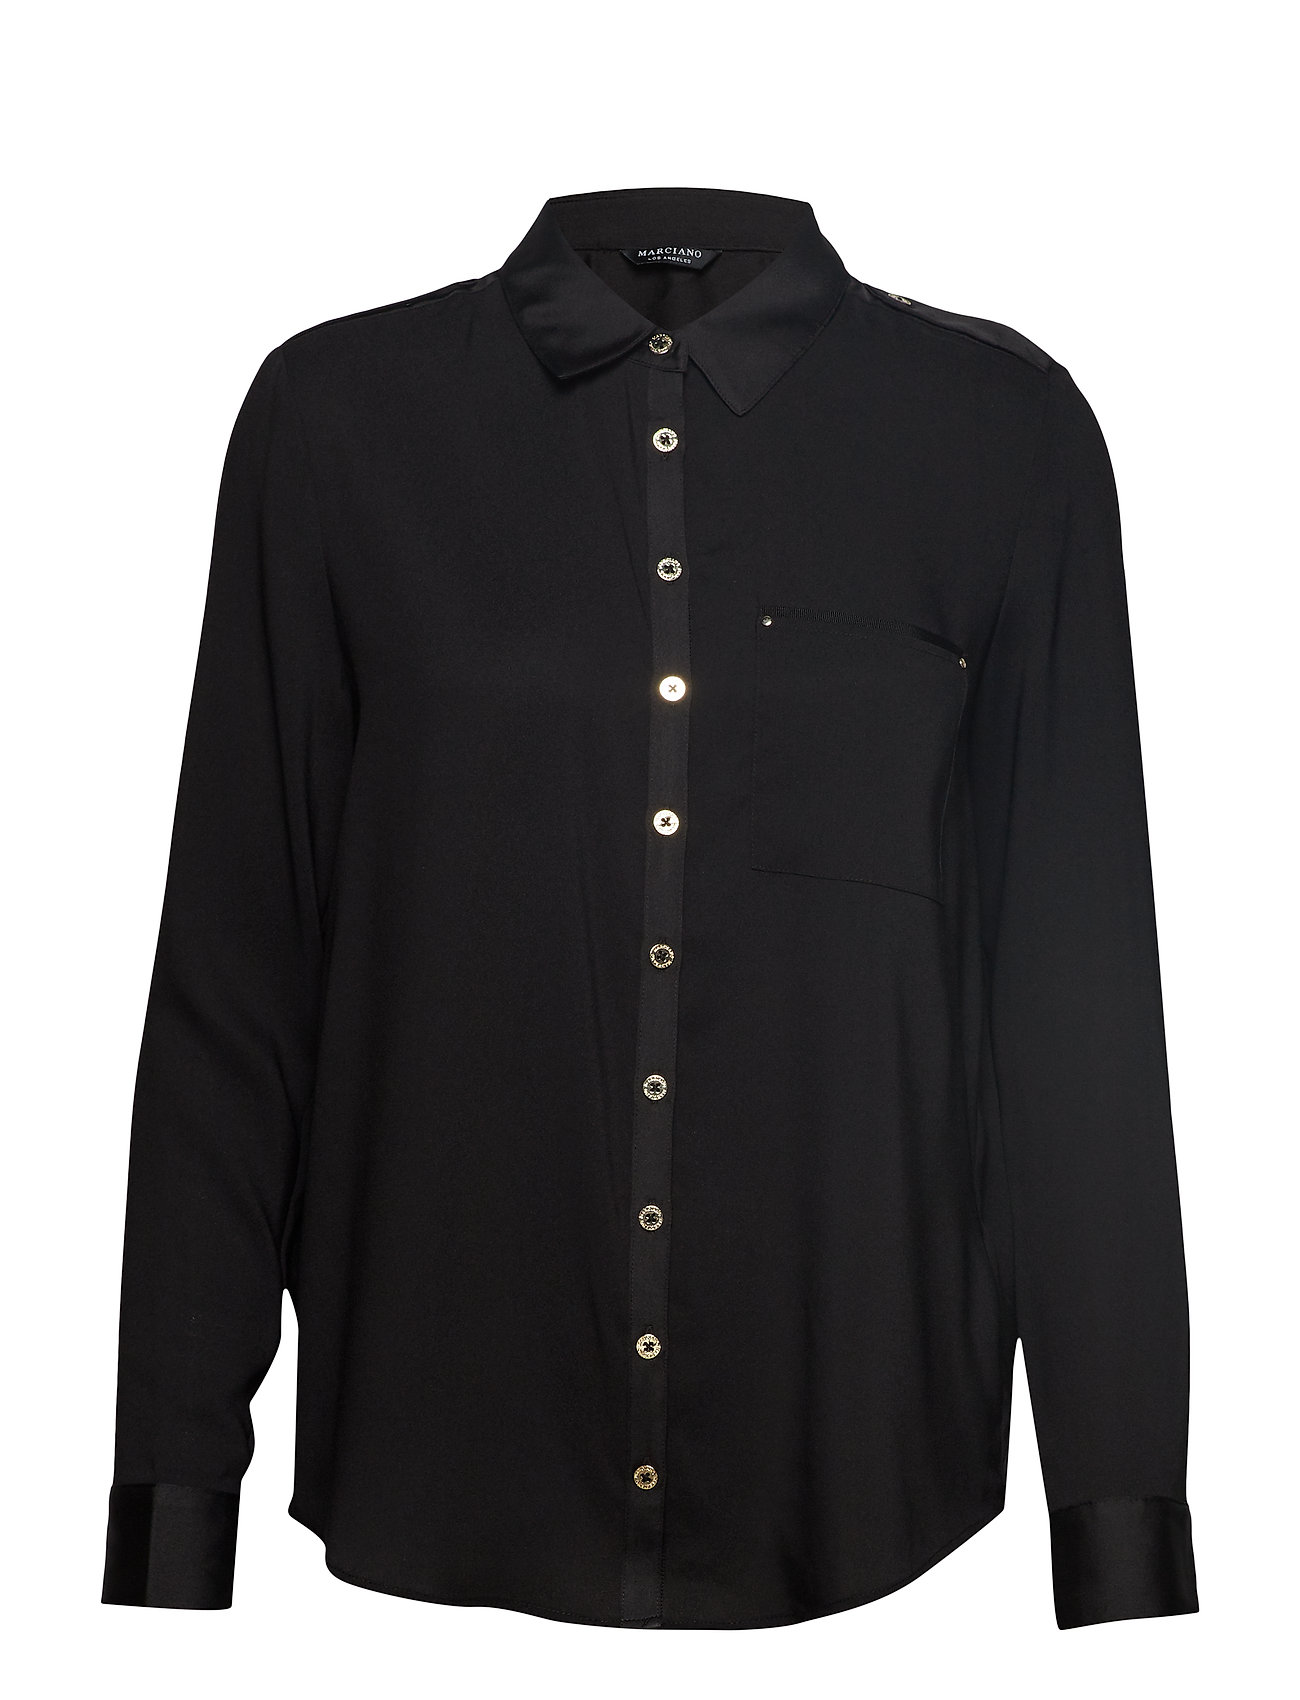 2933e0274 Piper Shirt (Jet Black A996) (£54.45) - Marciano by GUESS - | Boozt.com